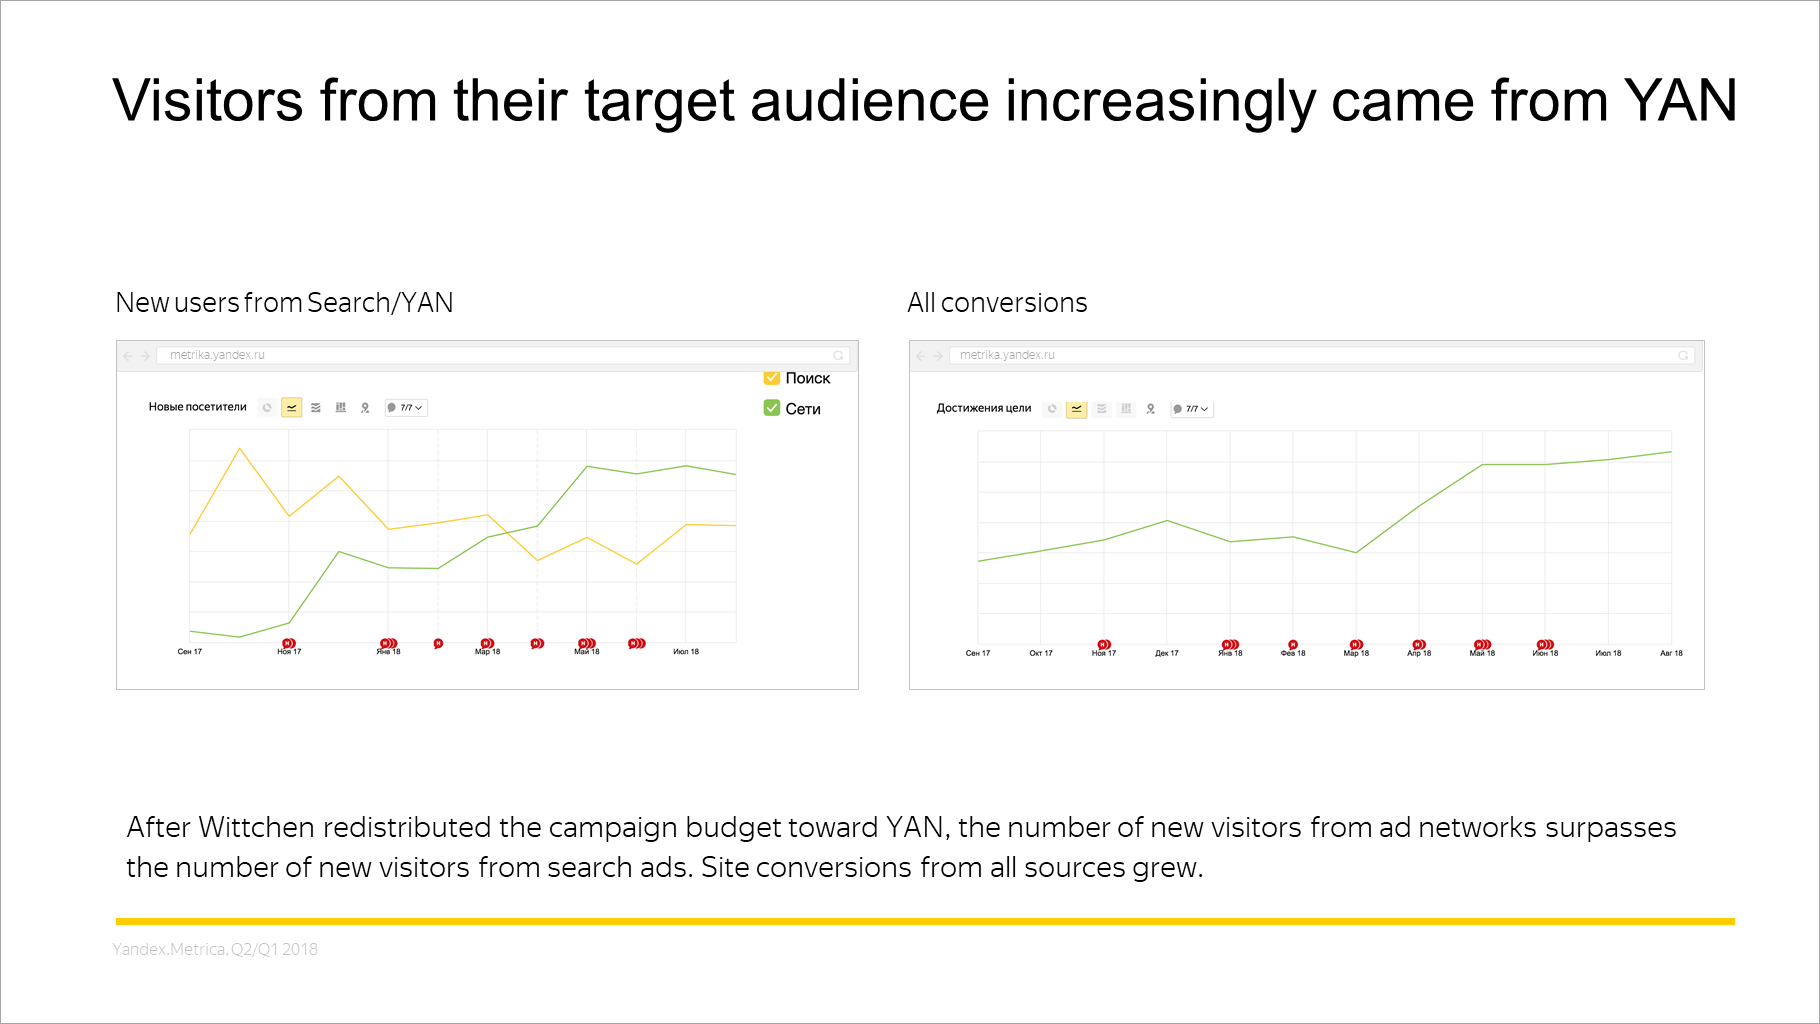 Visitors from their target audience increasingly came from YAN